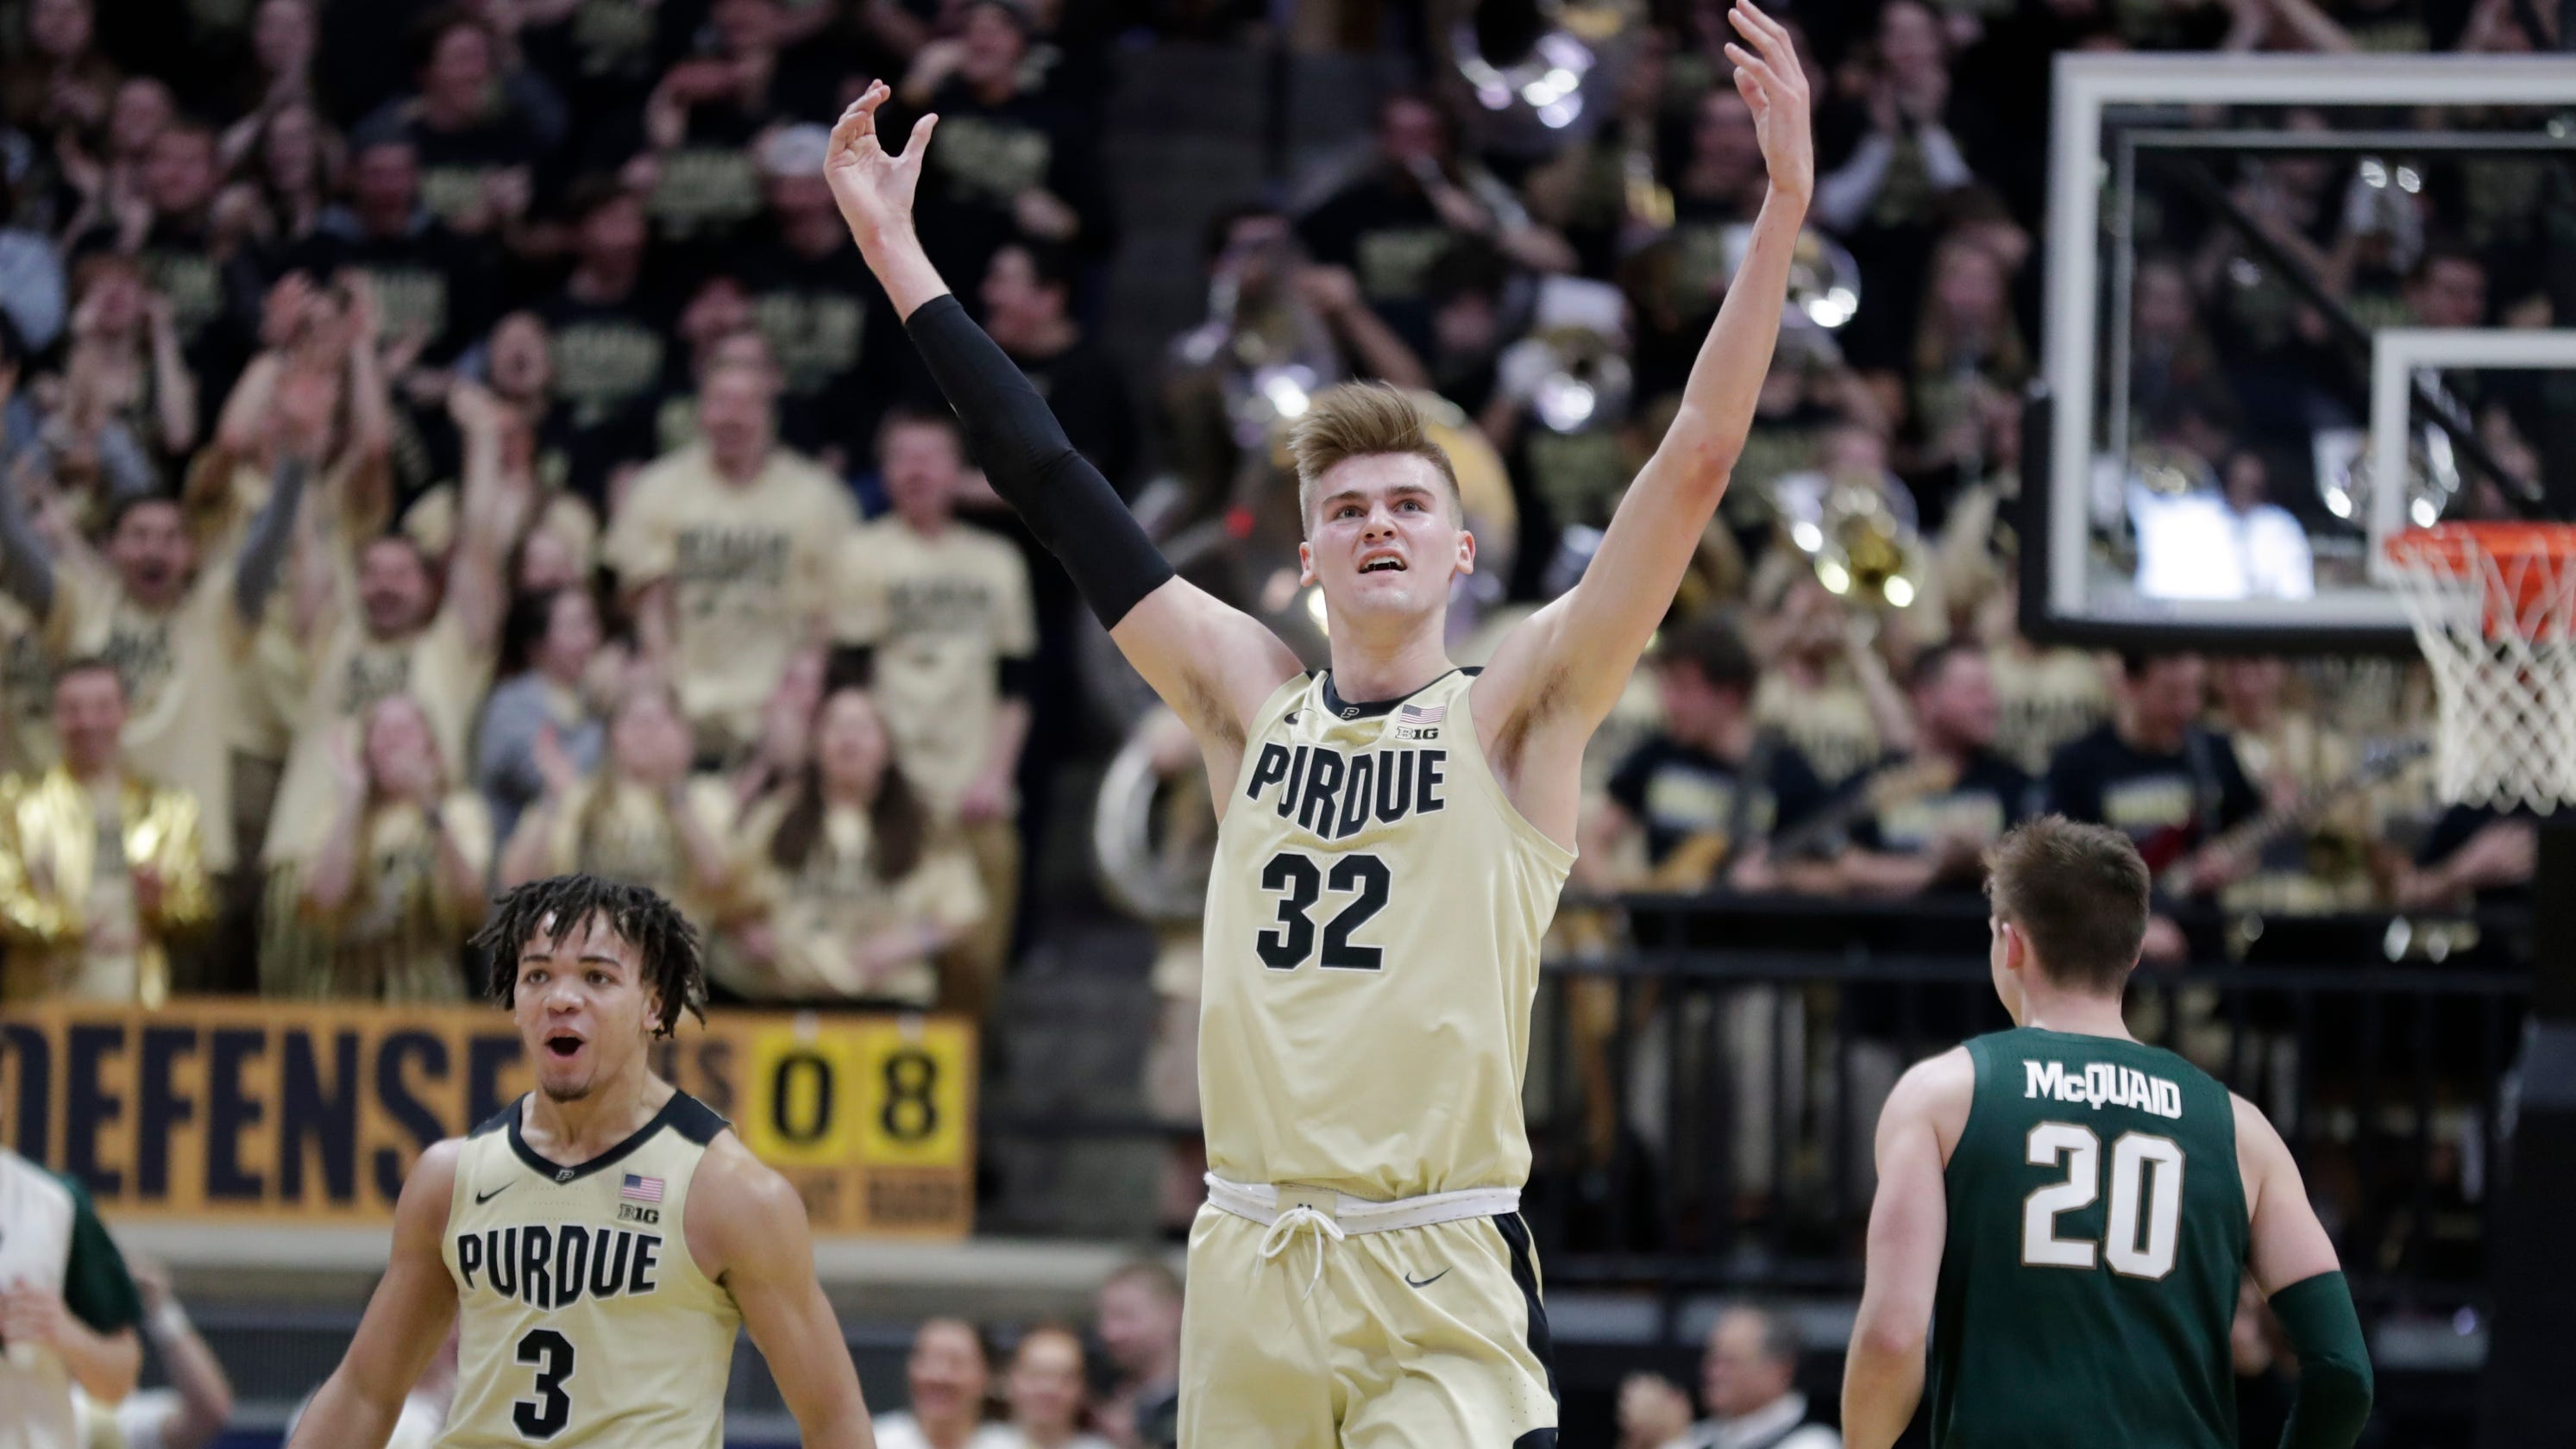 ddbf60b56d21 Purdue basketball finishes off victory over No. 6 Michigan State